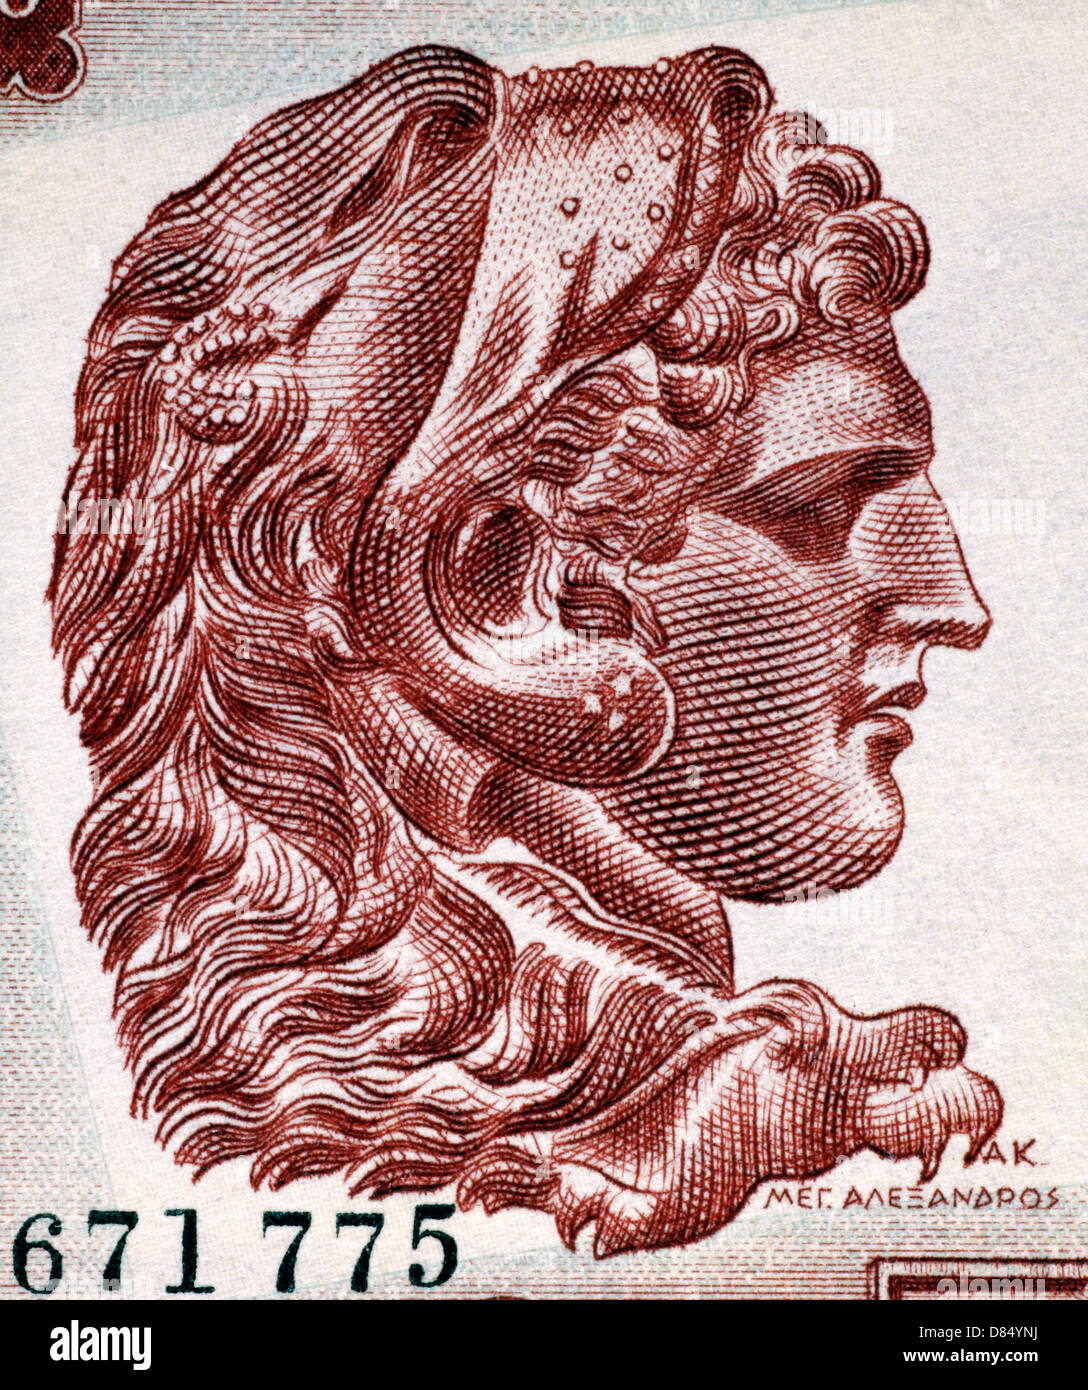 Alexander The Great (356-323BC) on 1000 Drachmai 1956 Banknote from Greece. - Stock Image